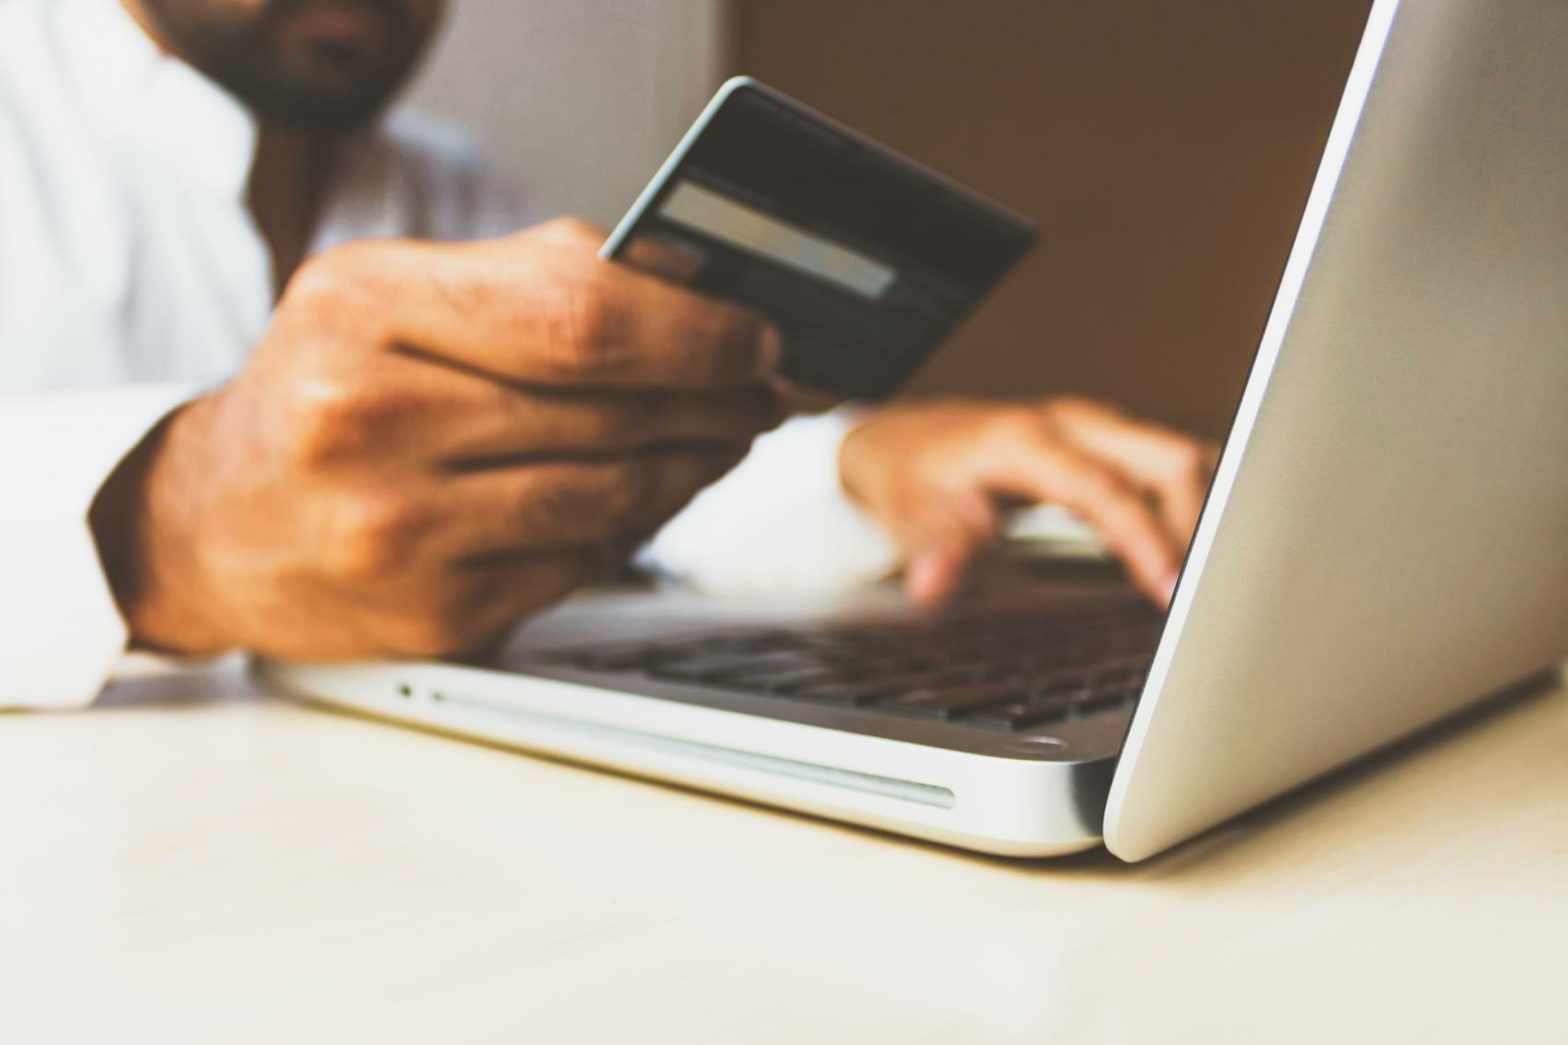 A man carefully copies his credit card information into his laptop, likely making an online purchase